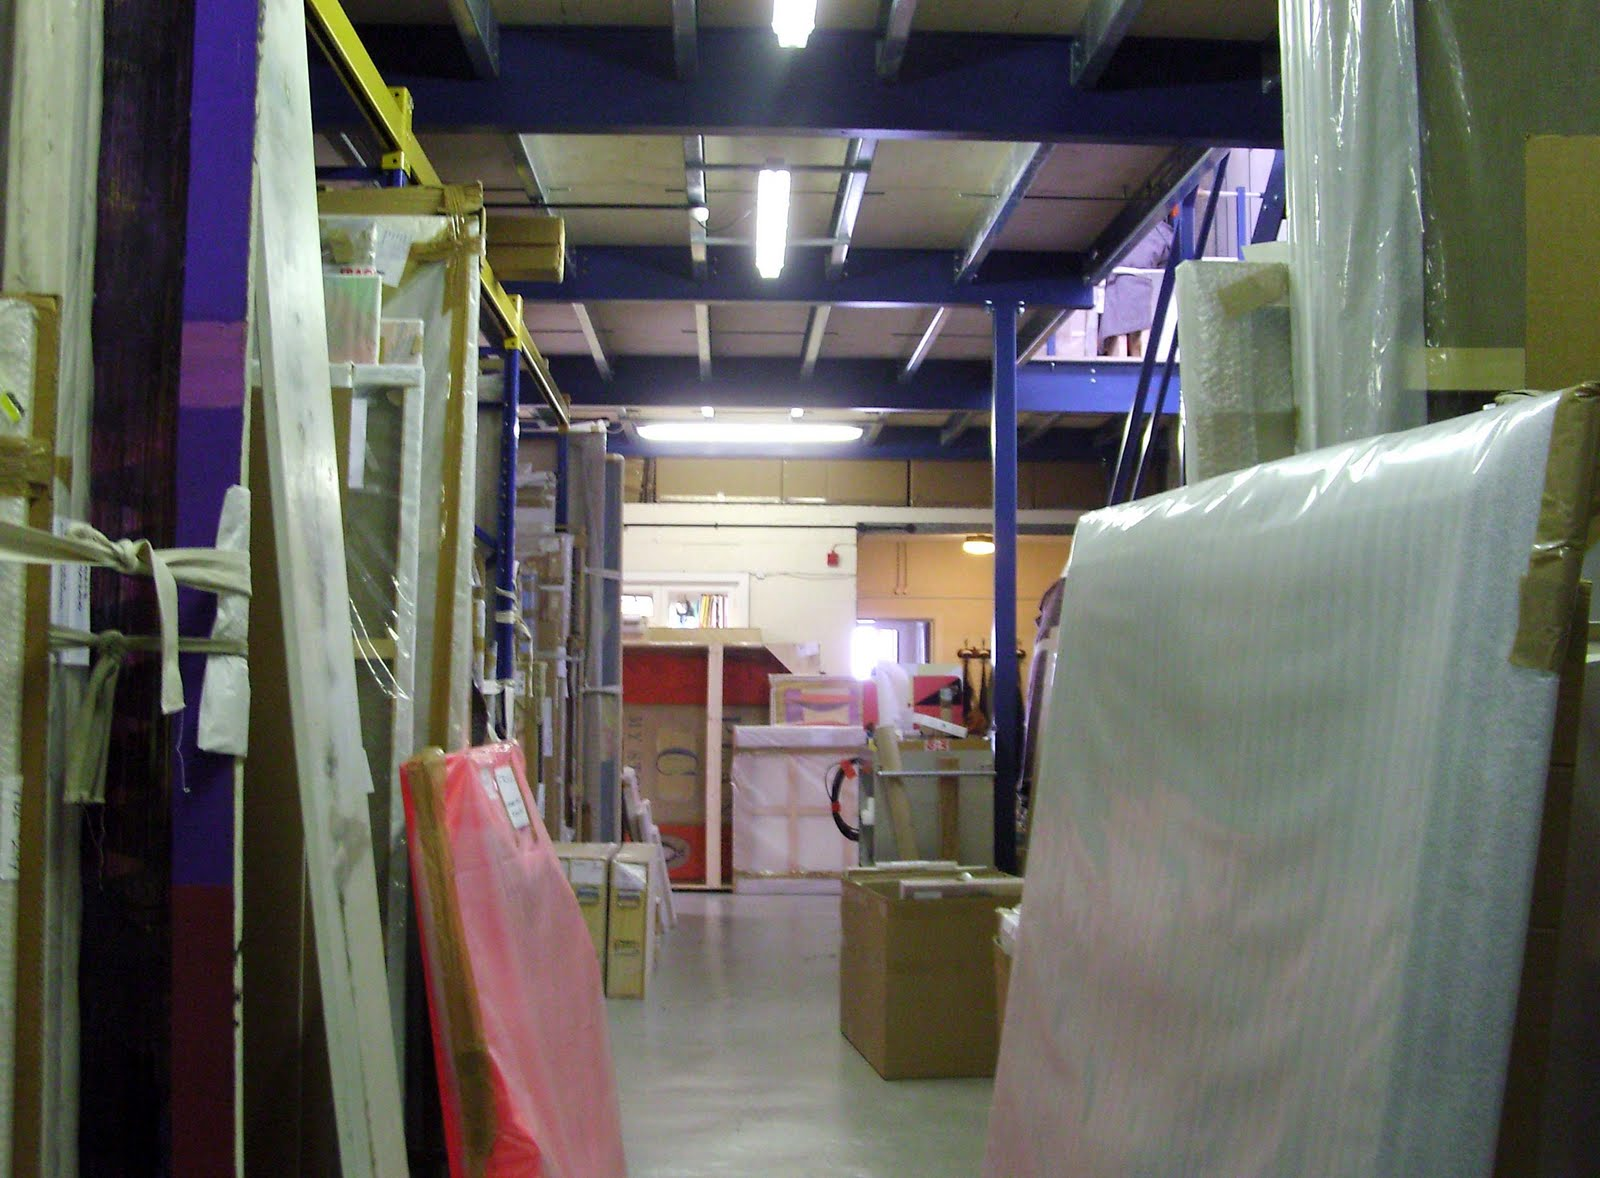 Blue apron warehouse - The Warehouse Spaces Have To Be Kept Clear And Are Regularly Tidied Up And Works Put Away In Racks I Think First Off Tomorrow I Ll Be Helping The Guys